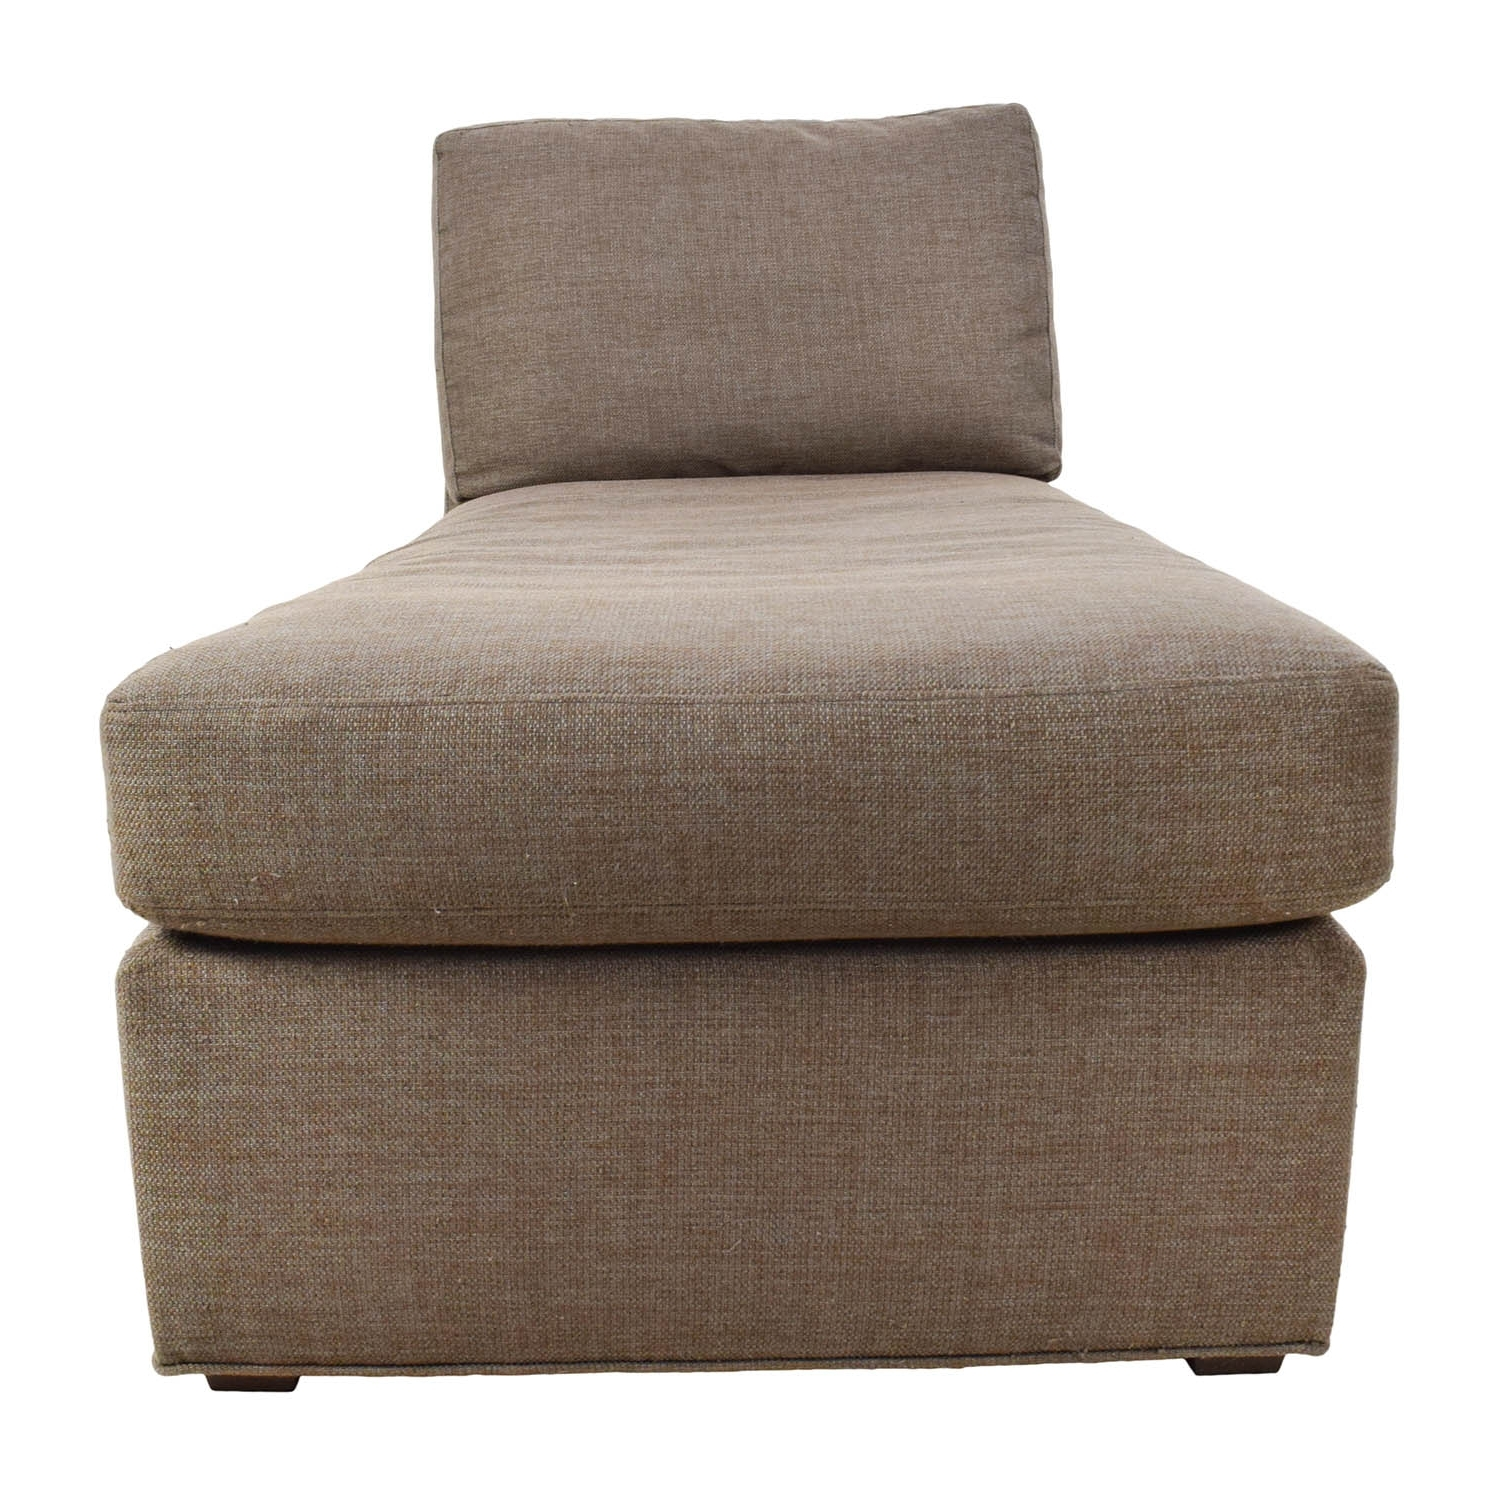 [%75% Off – Crate And Barrel Crate & Barrel Brown Chaise Lounge / Sofas With Regard To Most Current Crate And Barrel Chaises Crate And Barrel Chaises With Most Up To Date 75% Off – Crate And Barrel Crate & Barrel Brown Chaise Lounge / Sofas Well Known Crate And Barrel Chaises Inside 75% Off – Crate And Barrel Crate & Barrel Brown Chaise Lounge / Sofas Most Current 75% Off – Crate And Barrel Crate & Barrel Brown Chaise Lounge / Sofas Within Crate And Barrel Chaises%] (View 2 of 15)